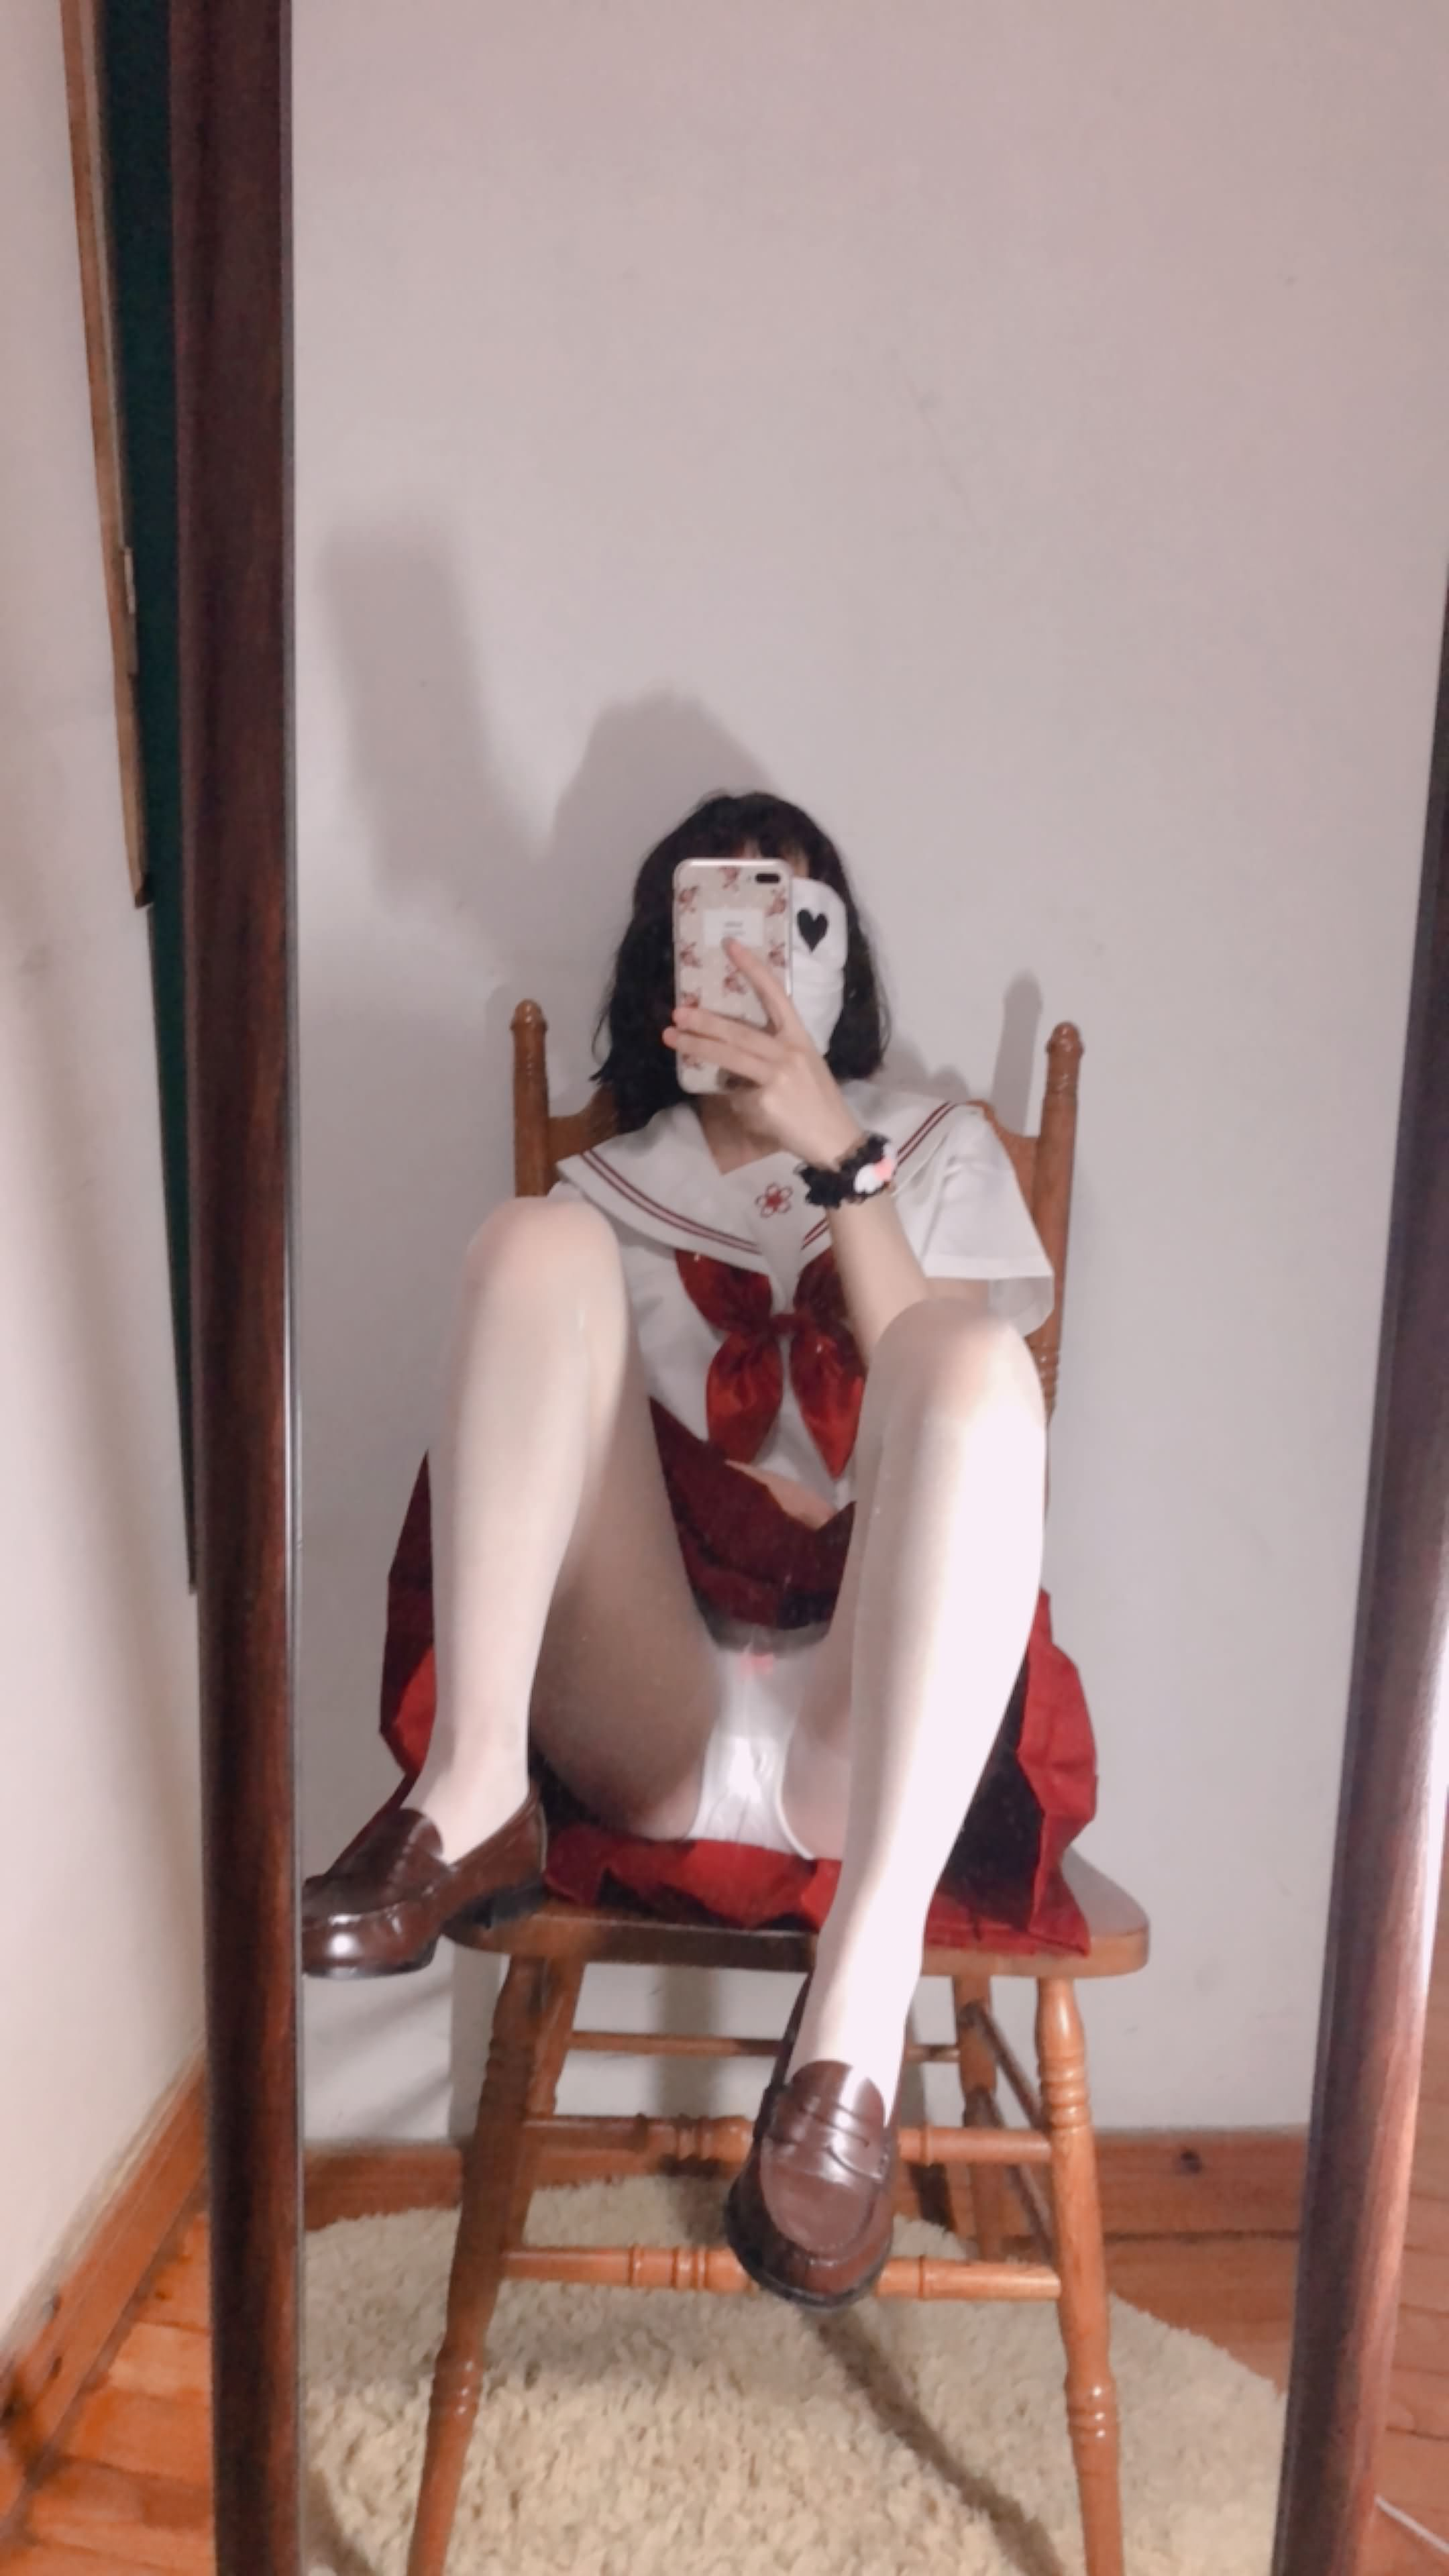 21 - Cosplay red JK uniform white stockings sweet pussy butt 小结巴-红色jk制服白丝 95P